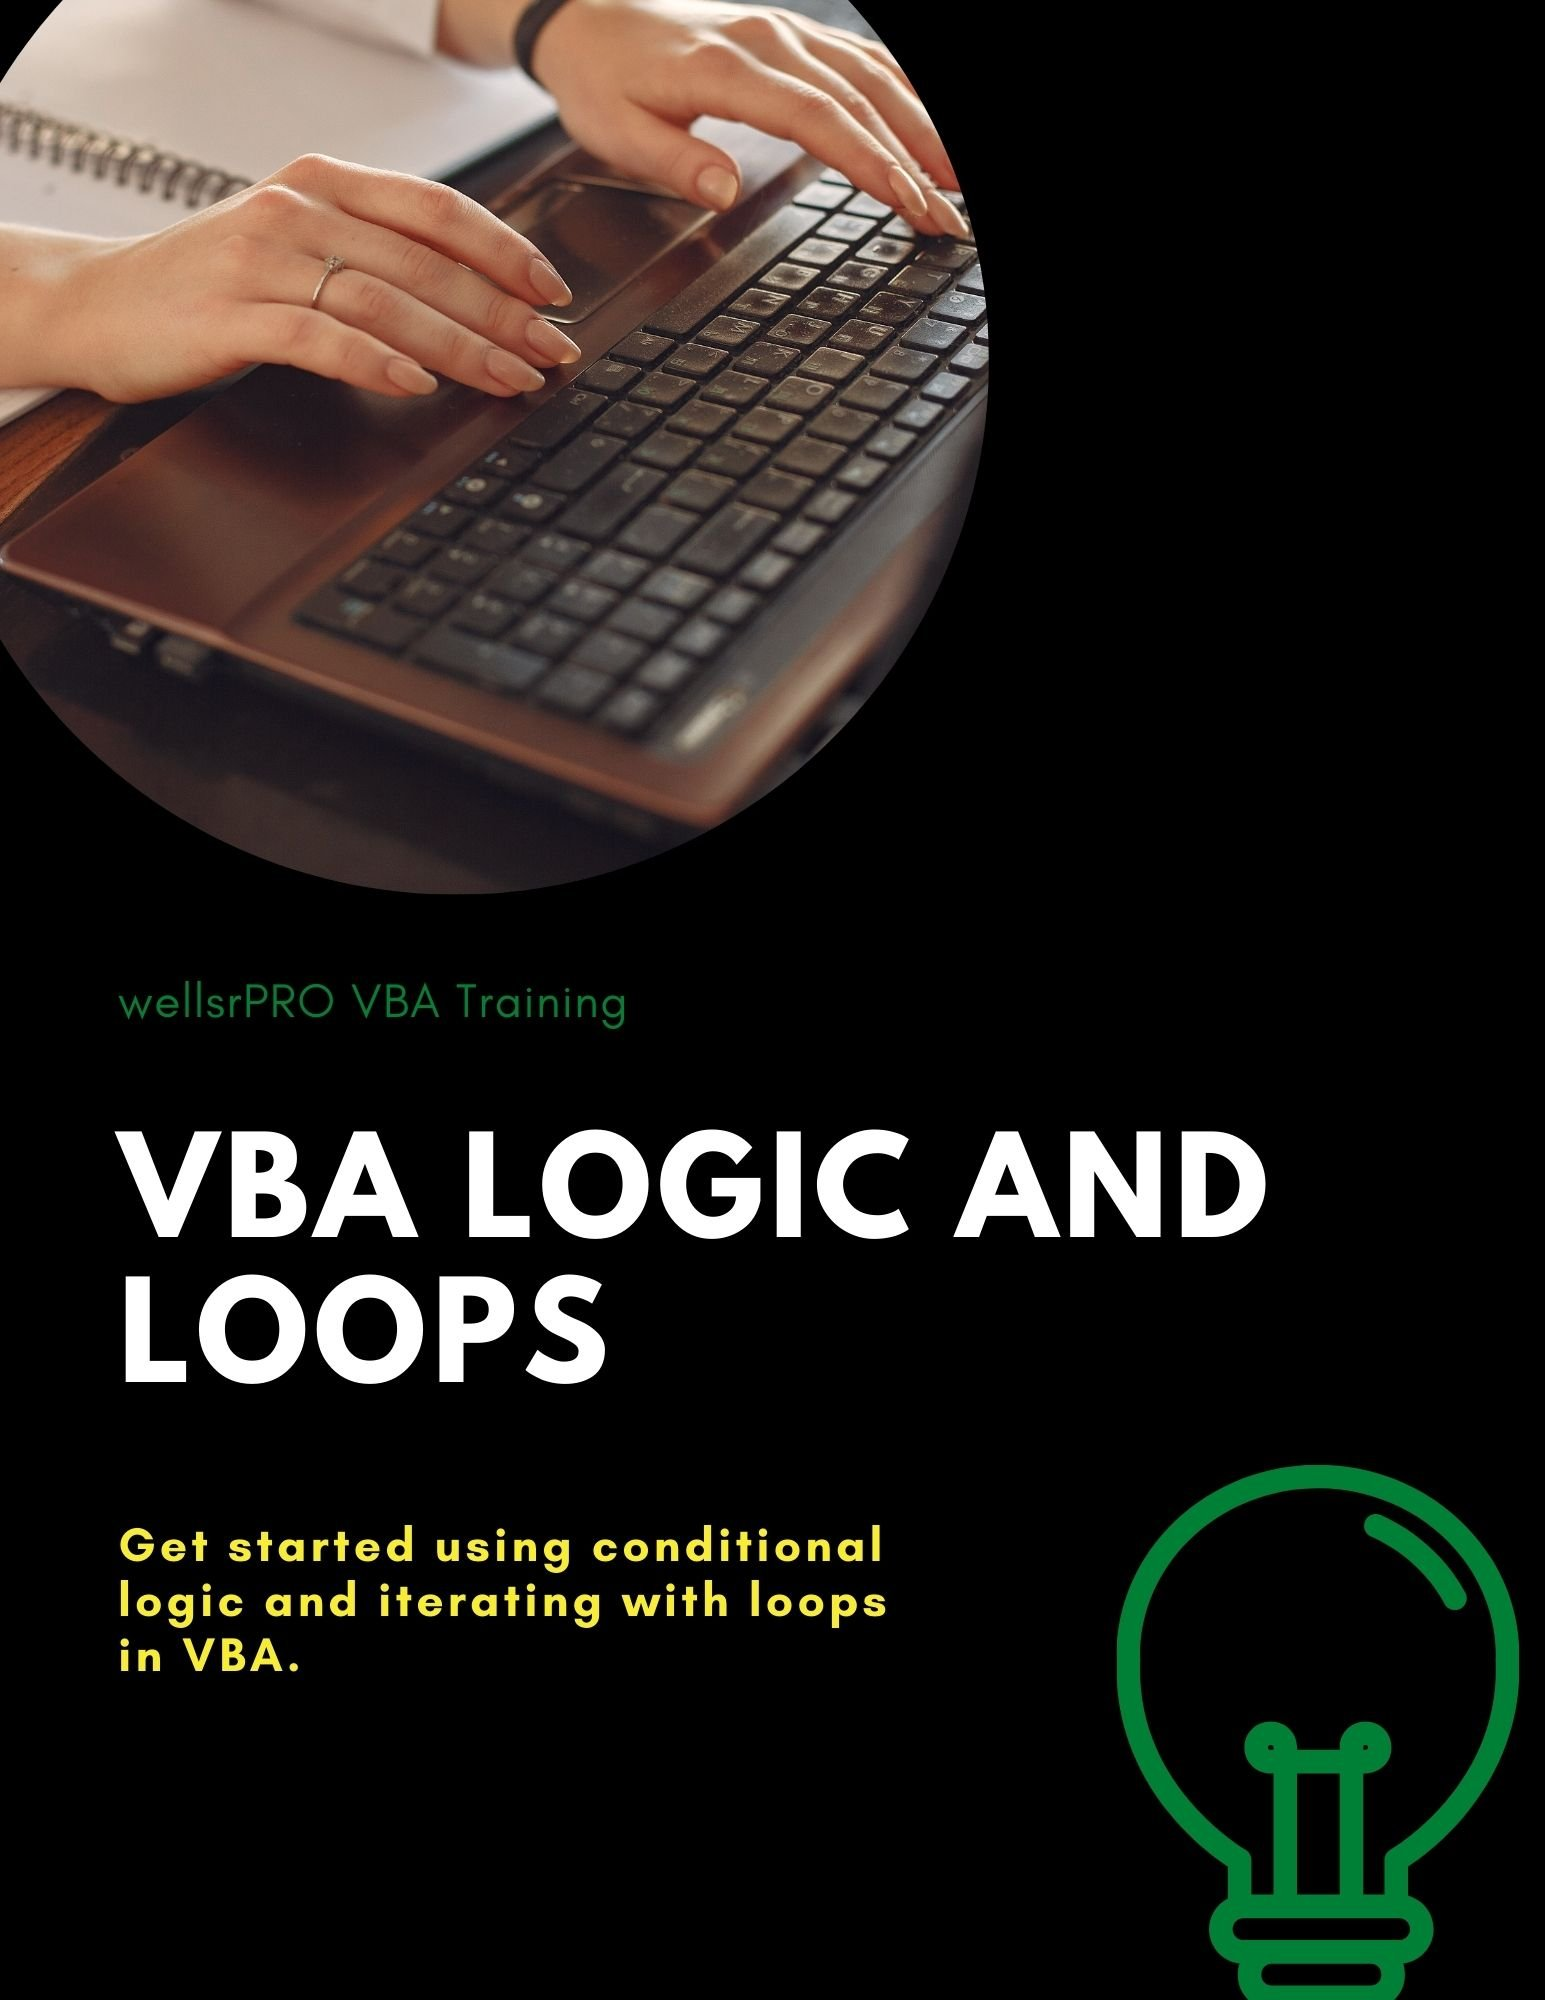 Get started using conditional logic and iterating with loops in VBA